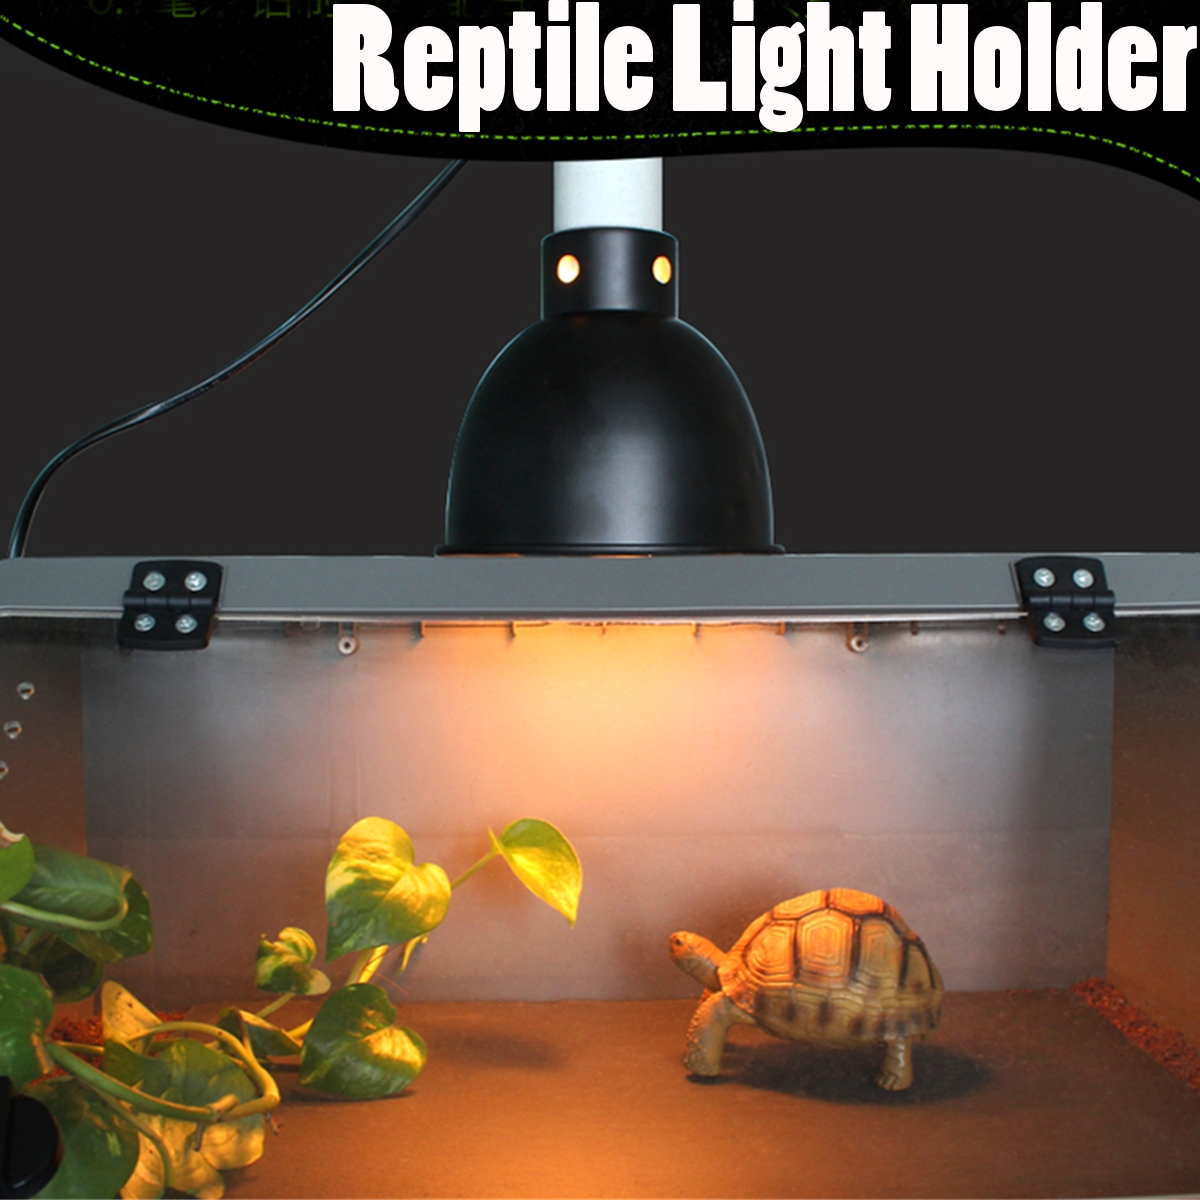 E27 ceramic heat uv uvb lamp light holder for aquarium amphibians e27 ceramic heat uv uvb lamp light holder for aquarium amphibians reptile tortoise lampshade with switch in lamp covers shades from lights lighting on arubaitofo Choice Image